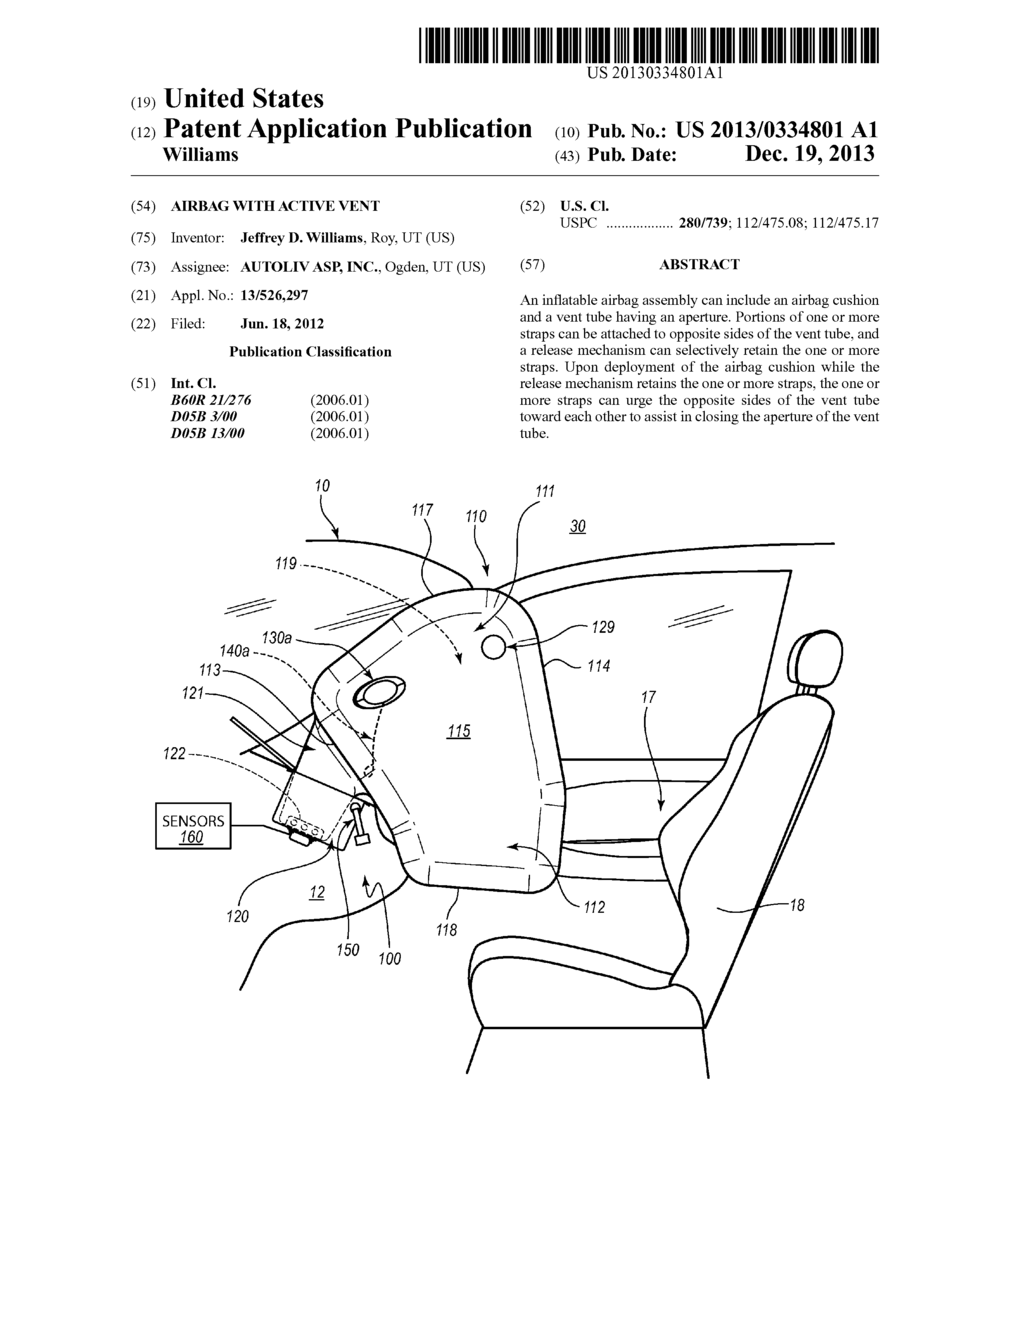 Airbag Schematic Fabric Diagram - numerical ysis of the ... on